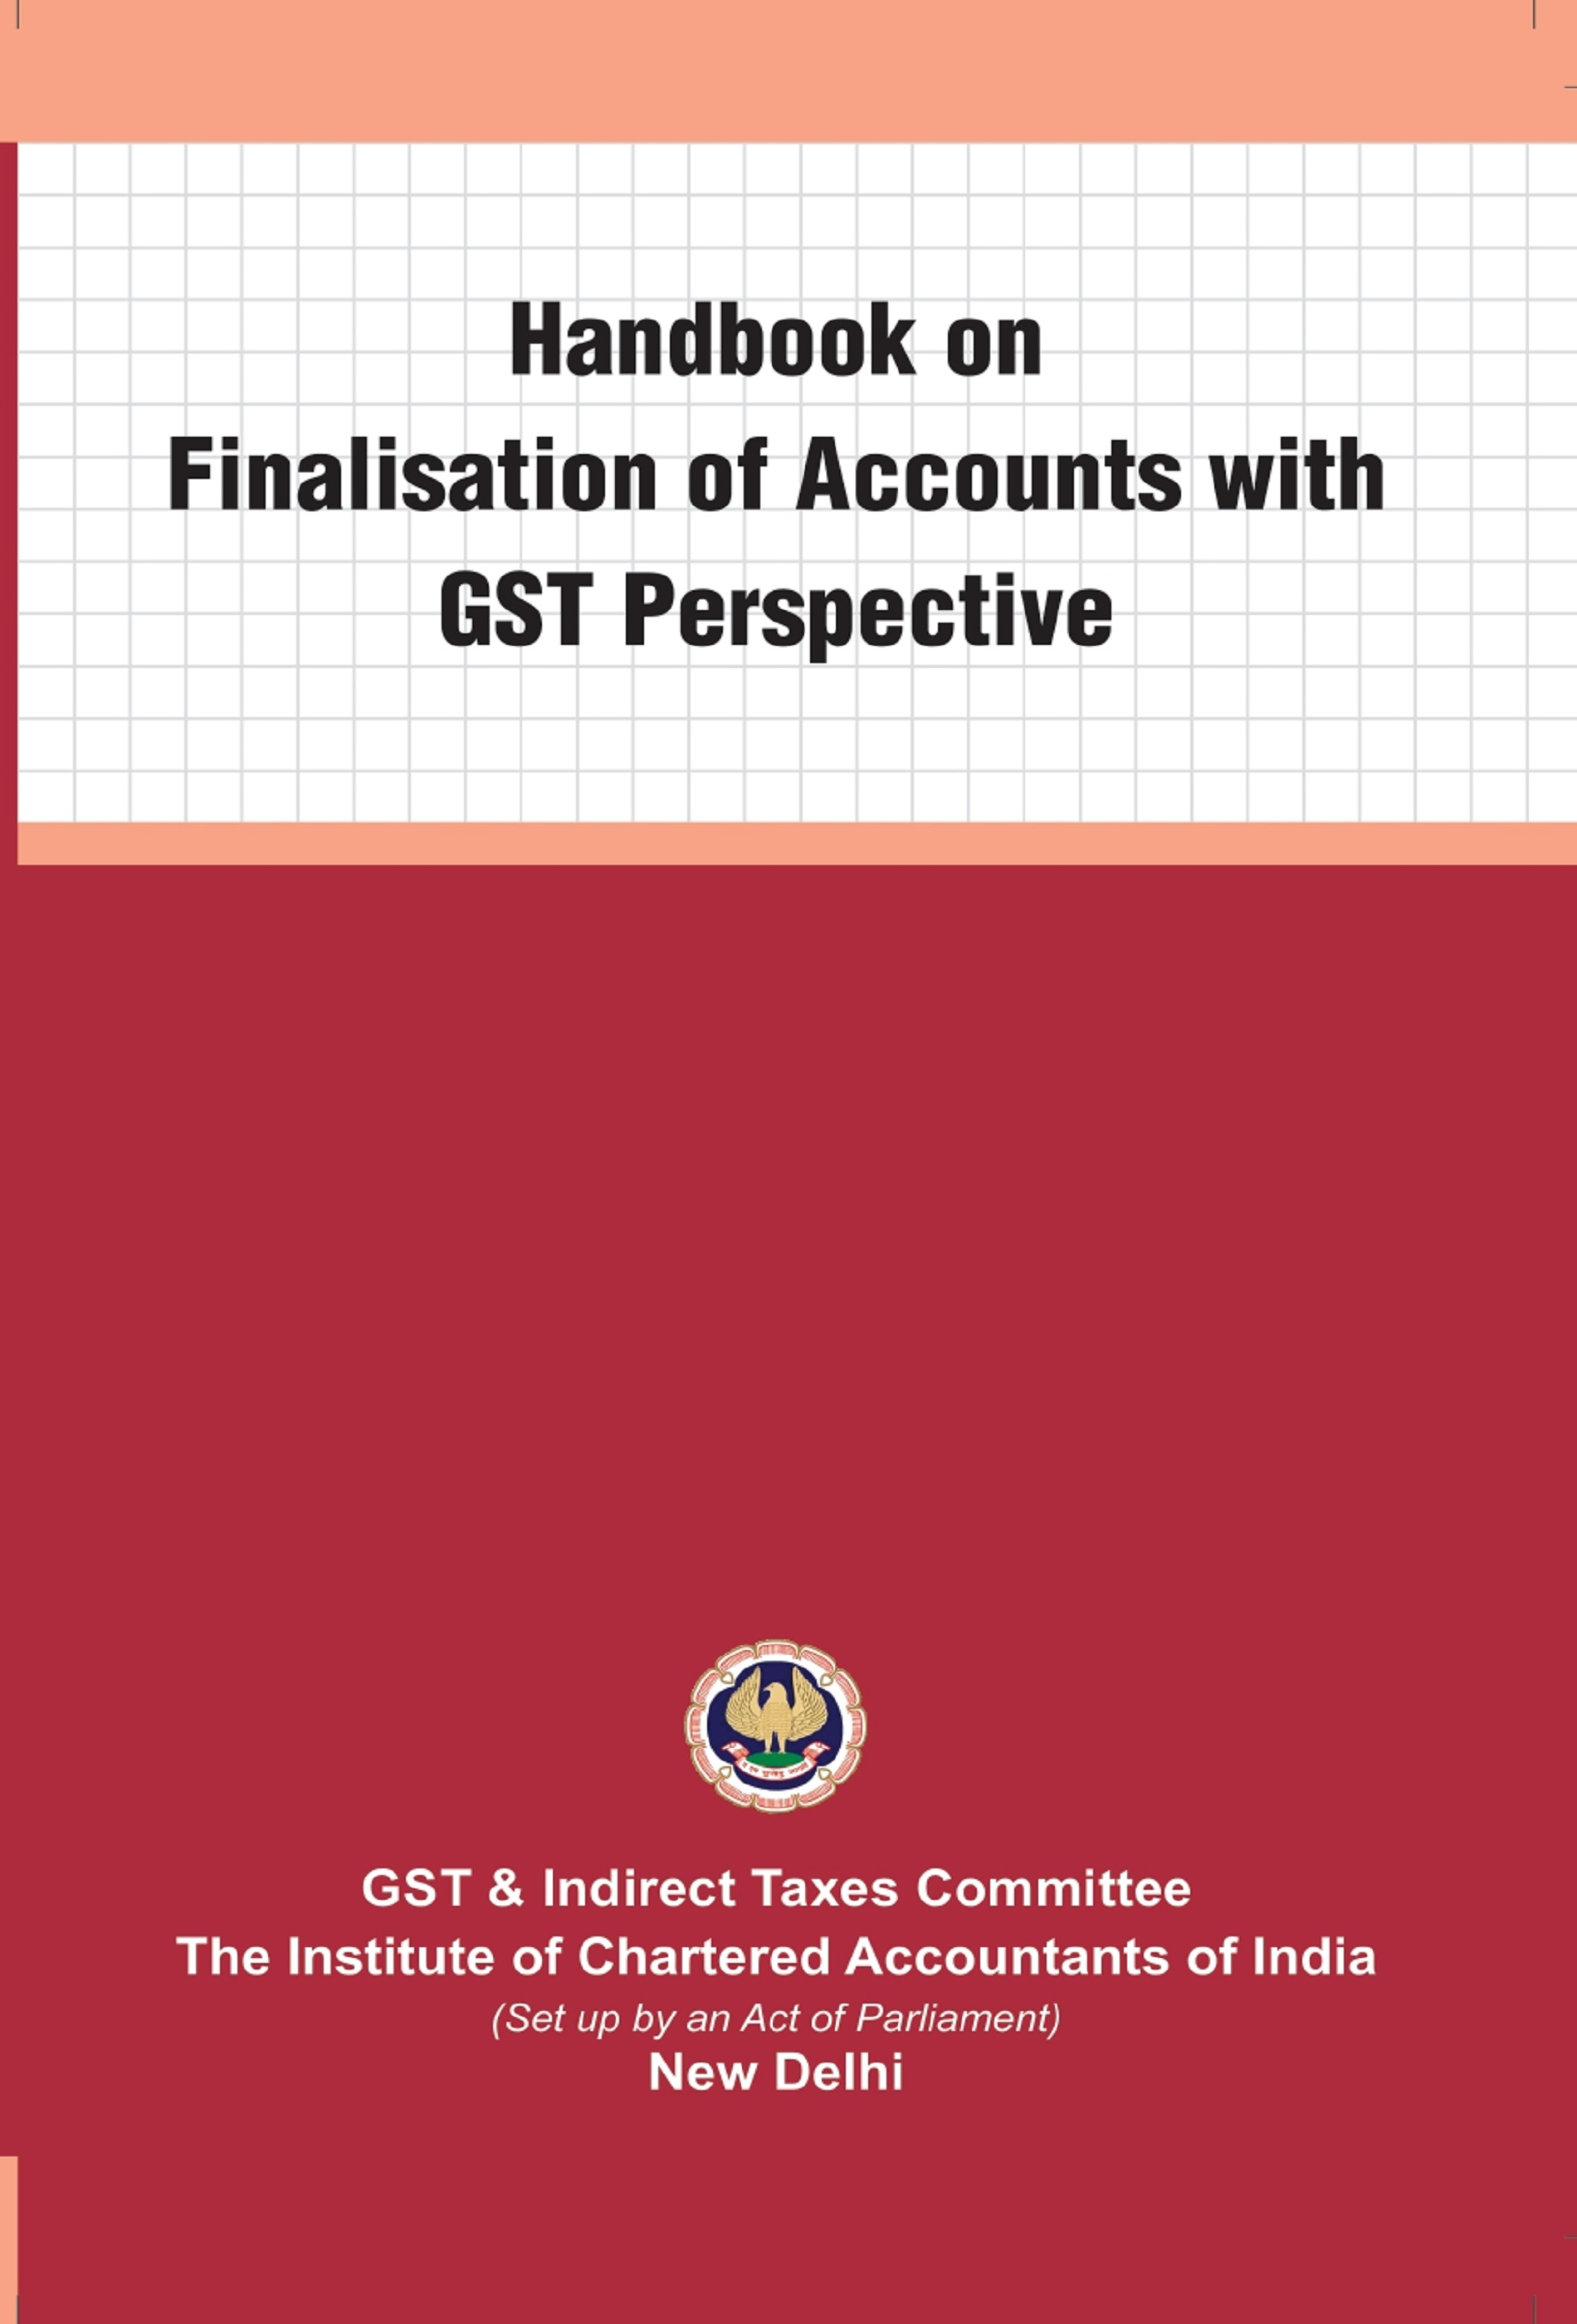 Handbook on Finalisation of Accounts with GST Perspective (November, 2020)